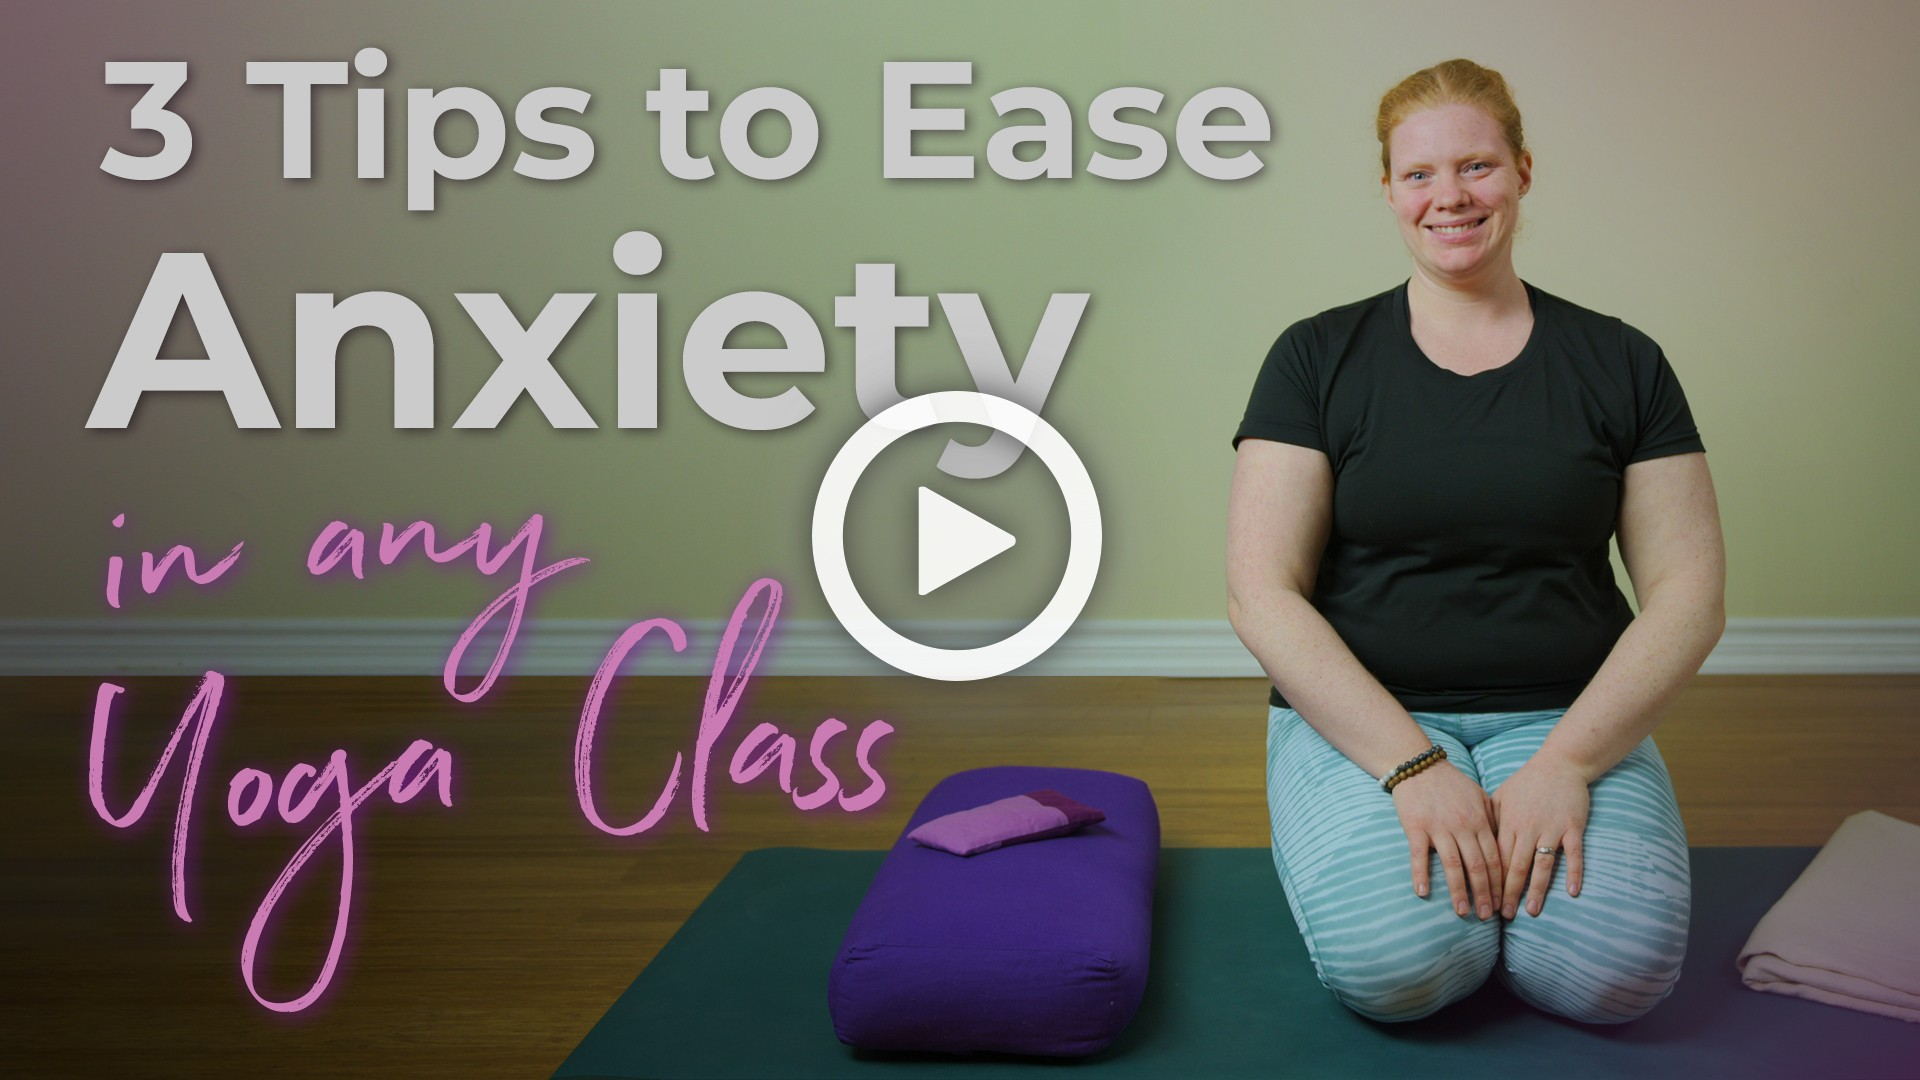 3 tips to ease anxiety in any yoga class